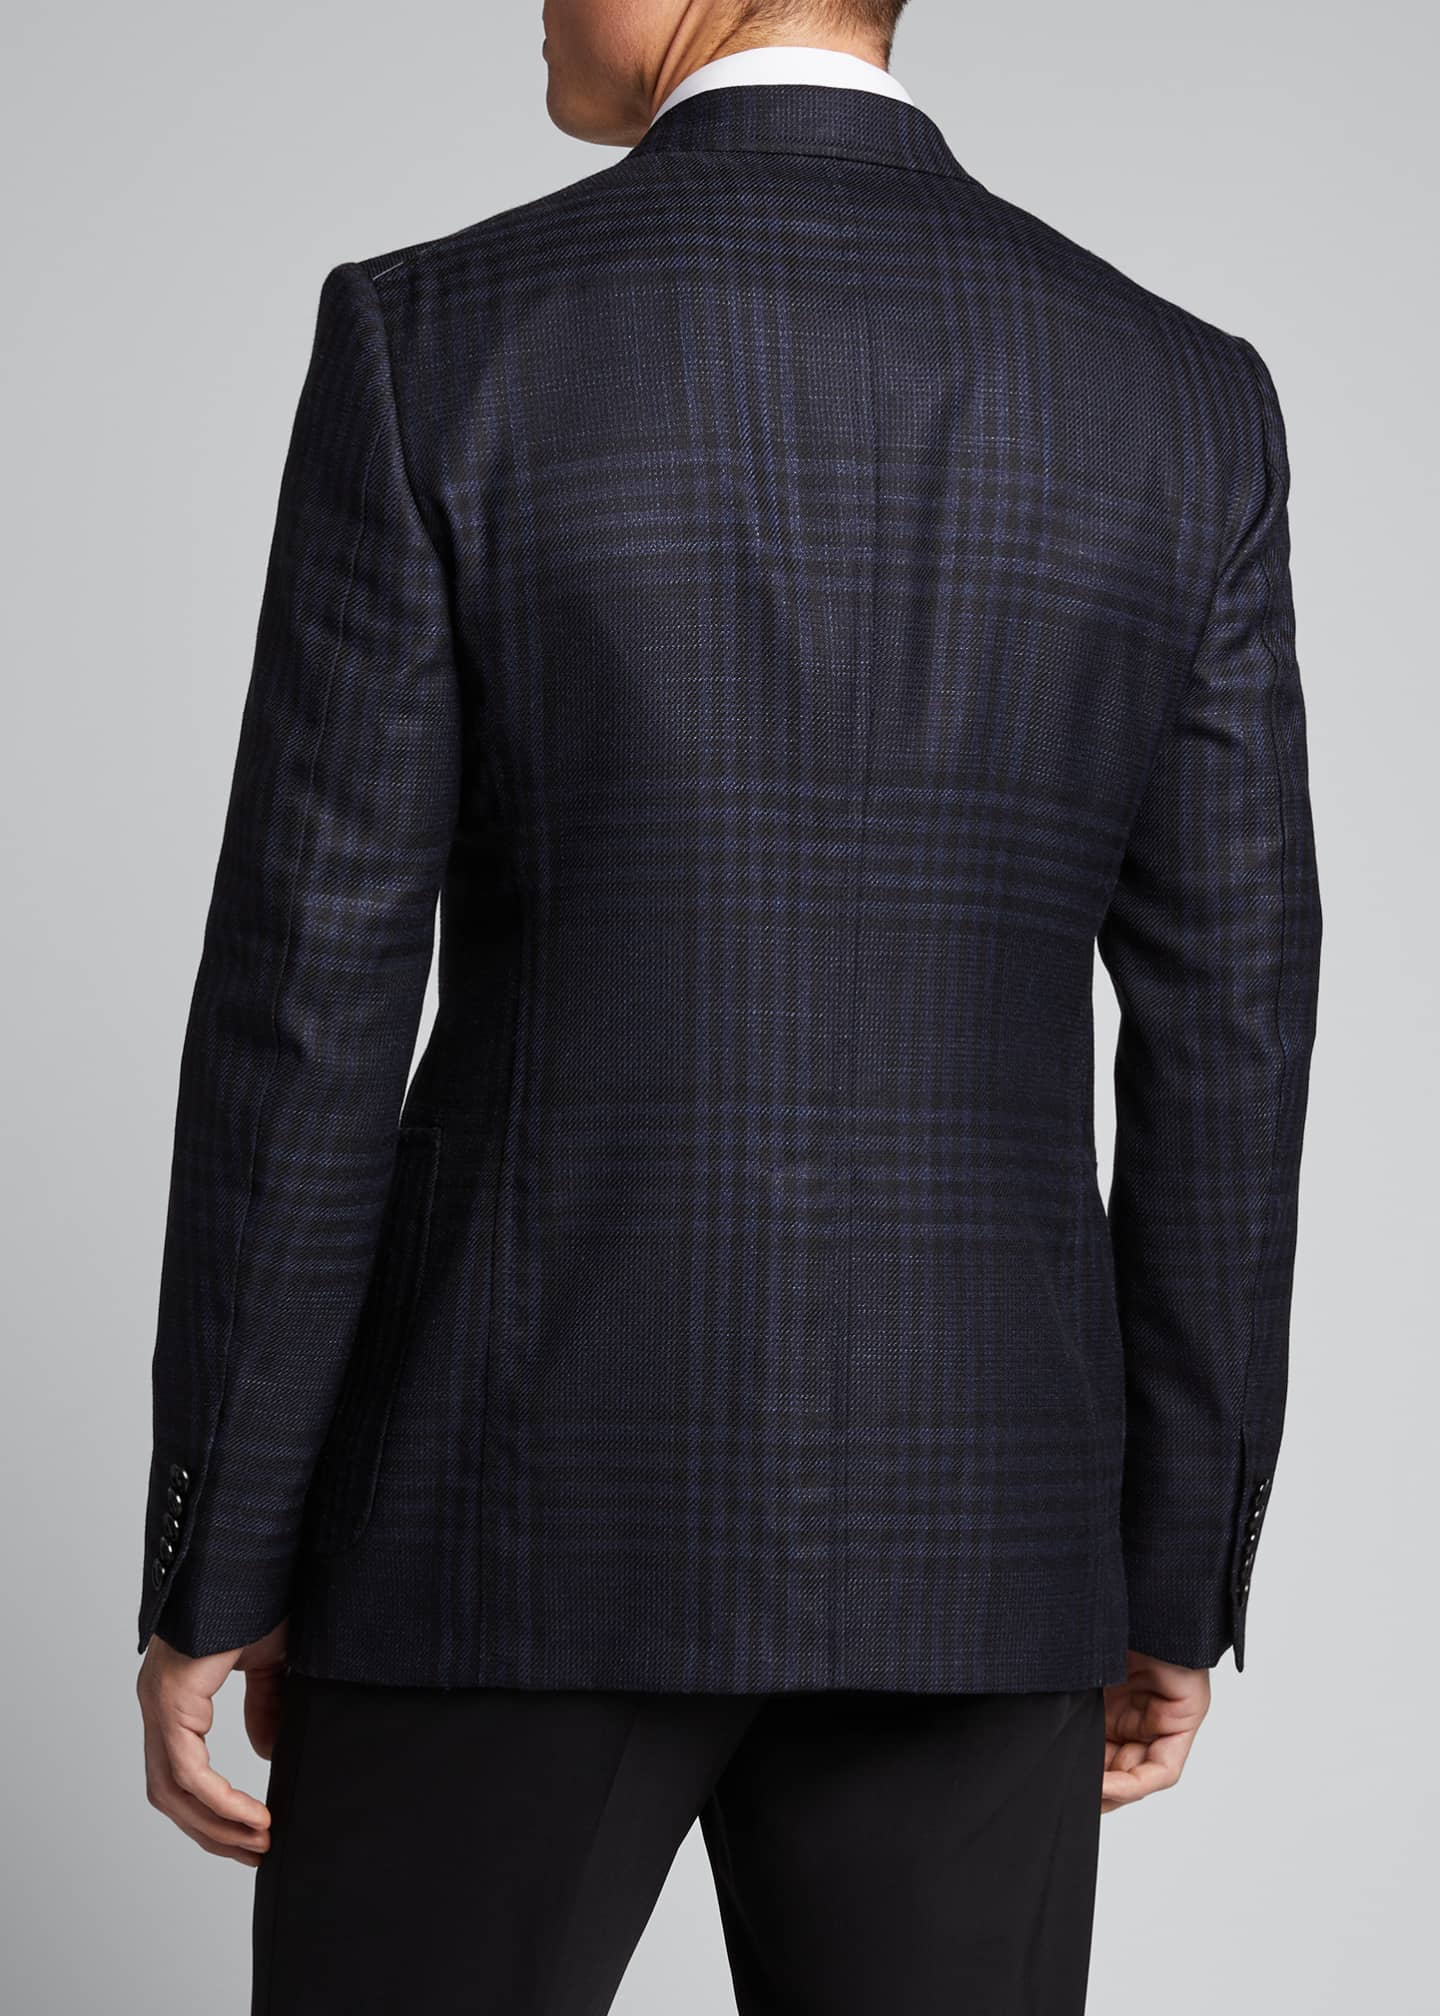 Image 2 of 4: Men's Shelton Grand Check Sport Jacket